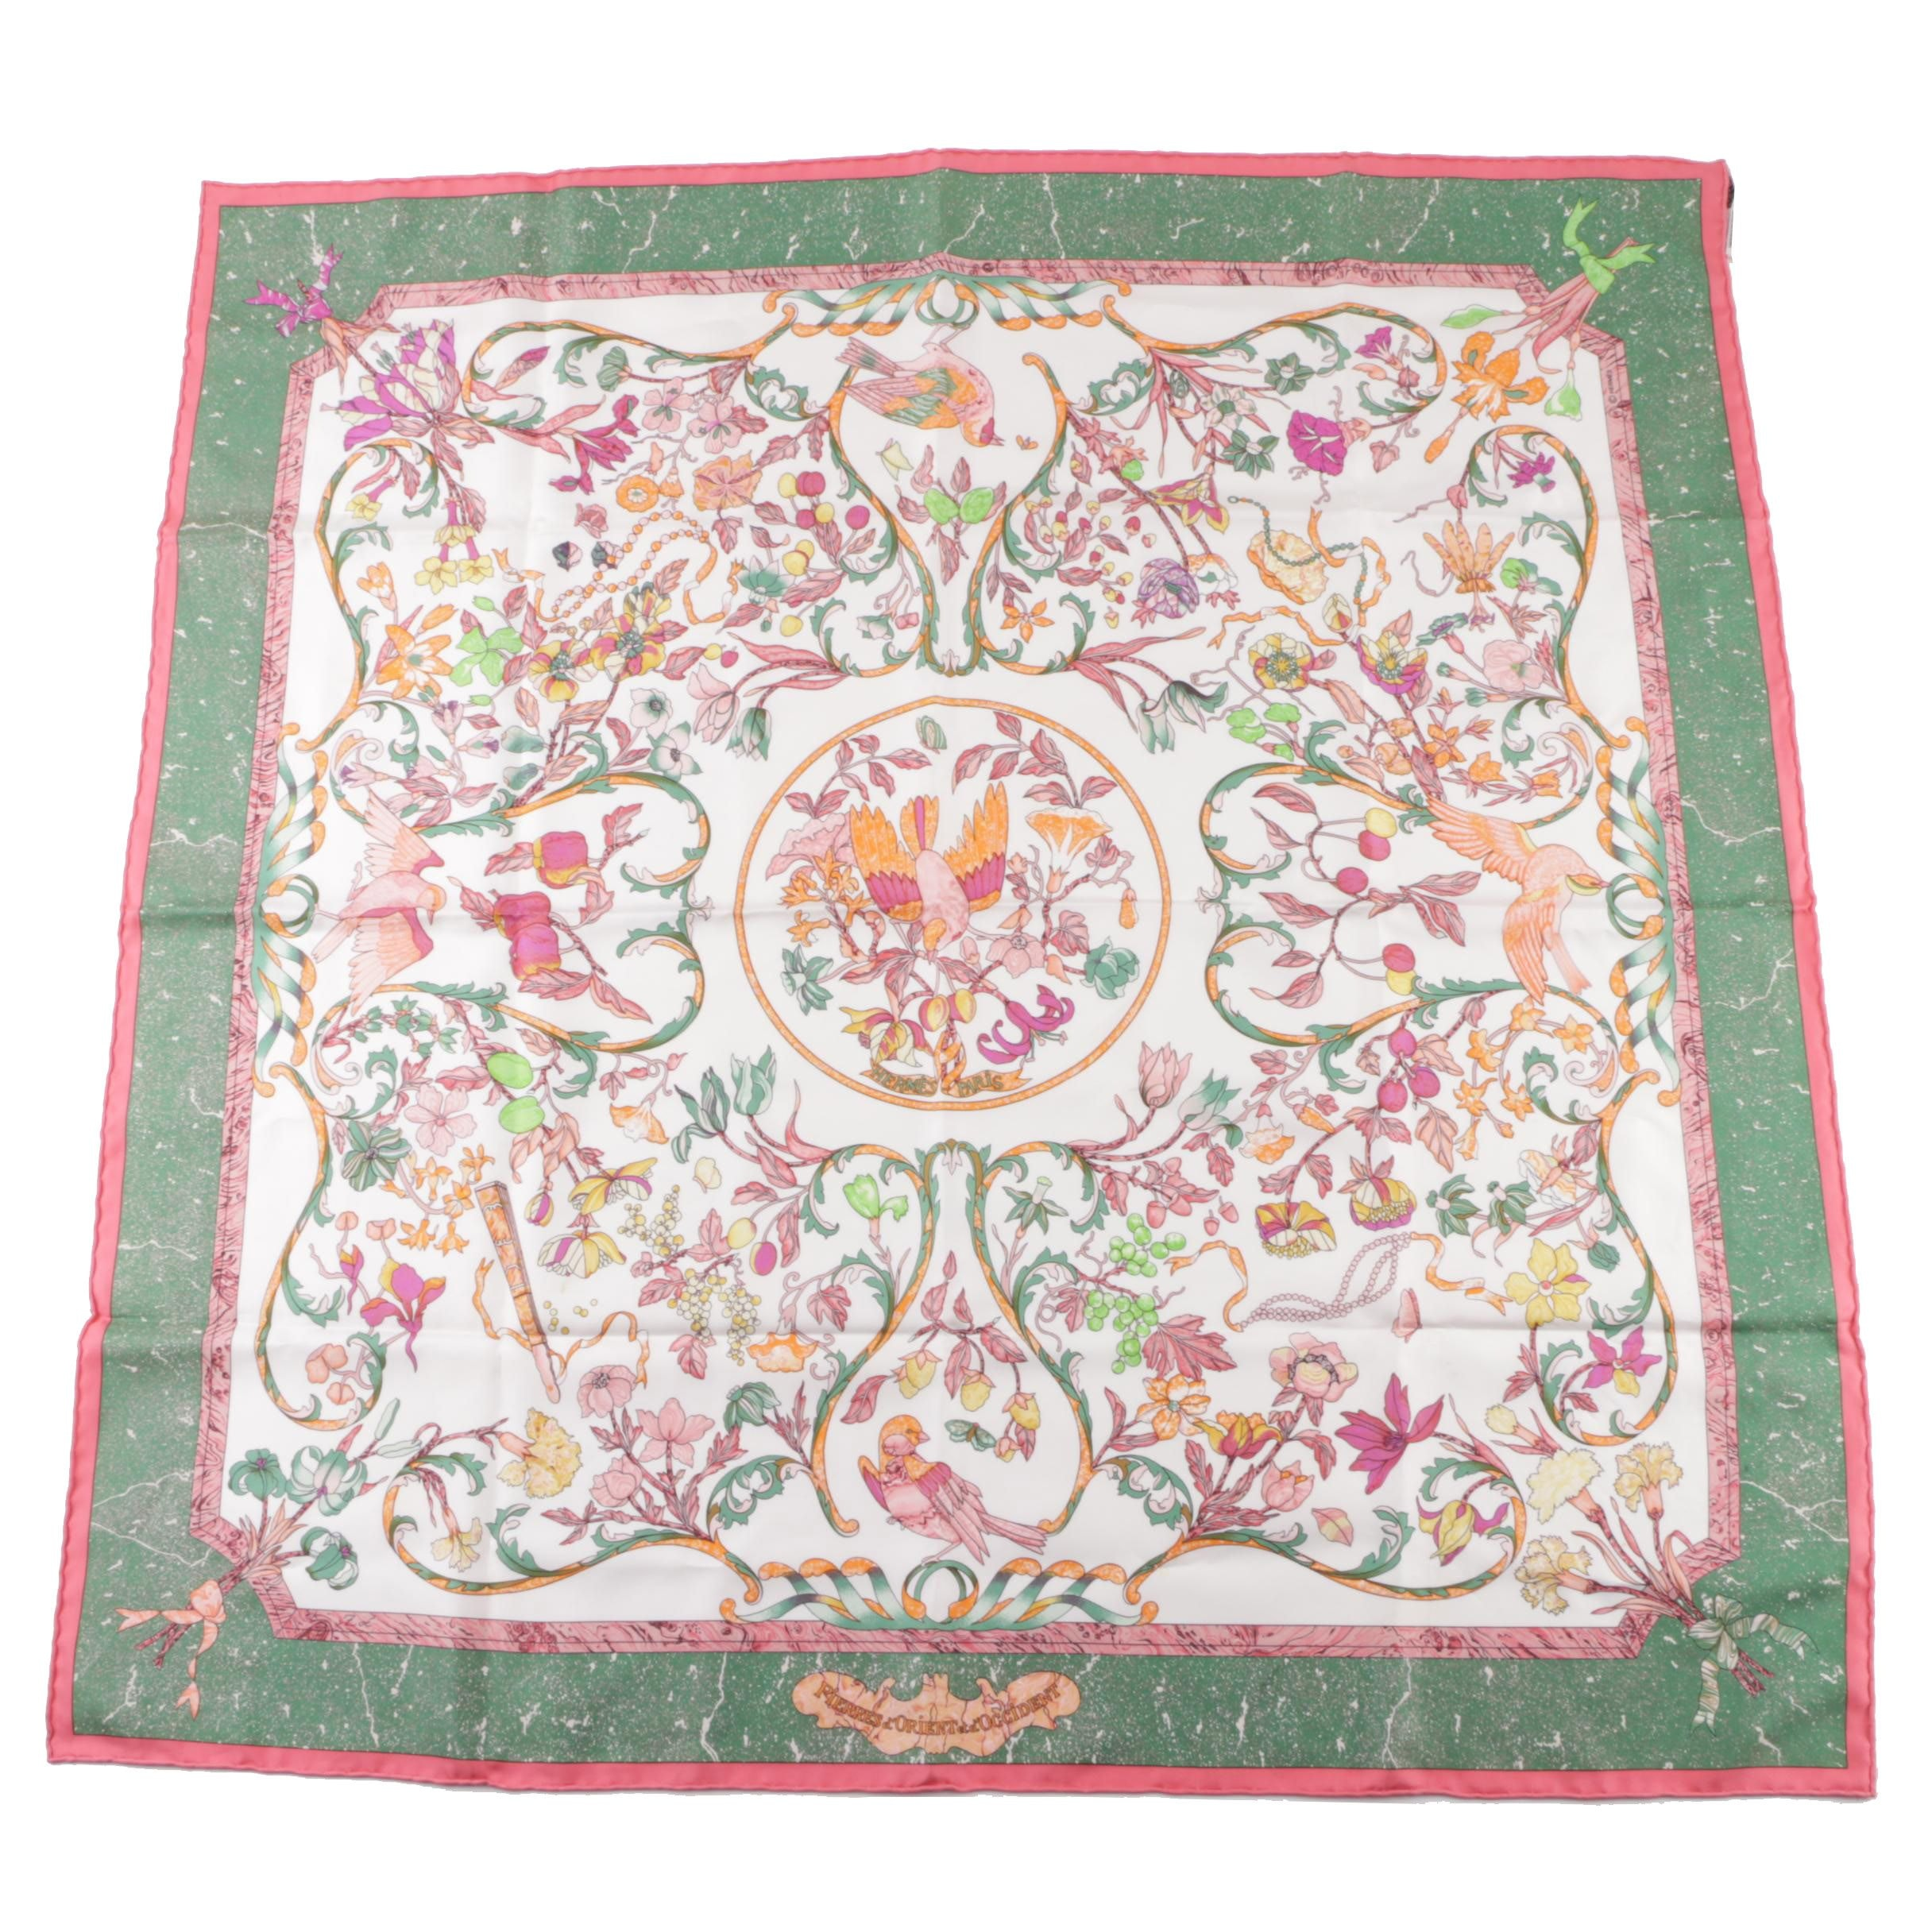 "Hermès of Paris ""Pierres d'Orient et d'Occident"" Silk Scarf"